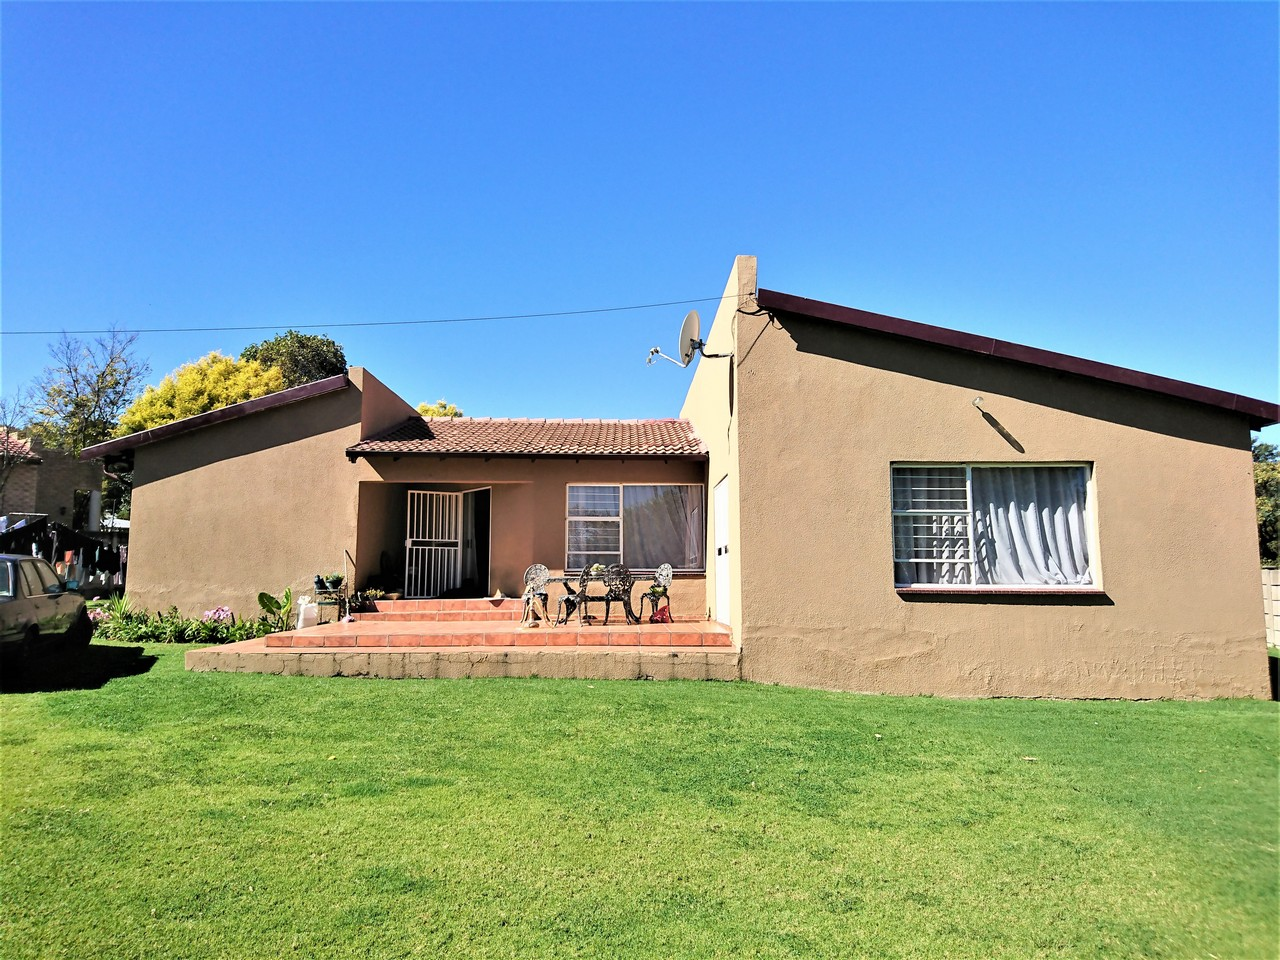 3 Bedroom House for sale in Brackendowns ENT0031078 : photo#10